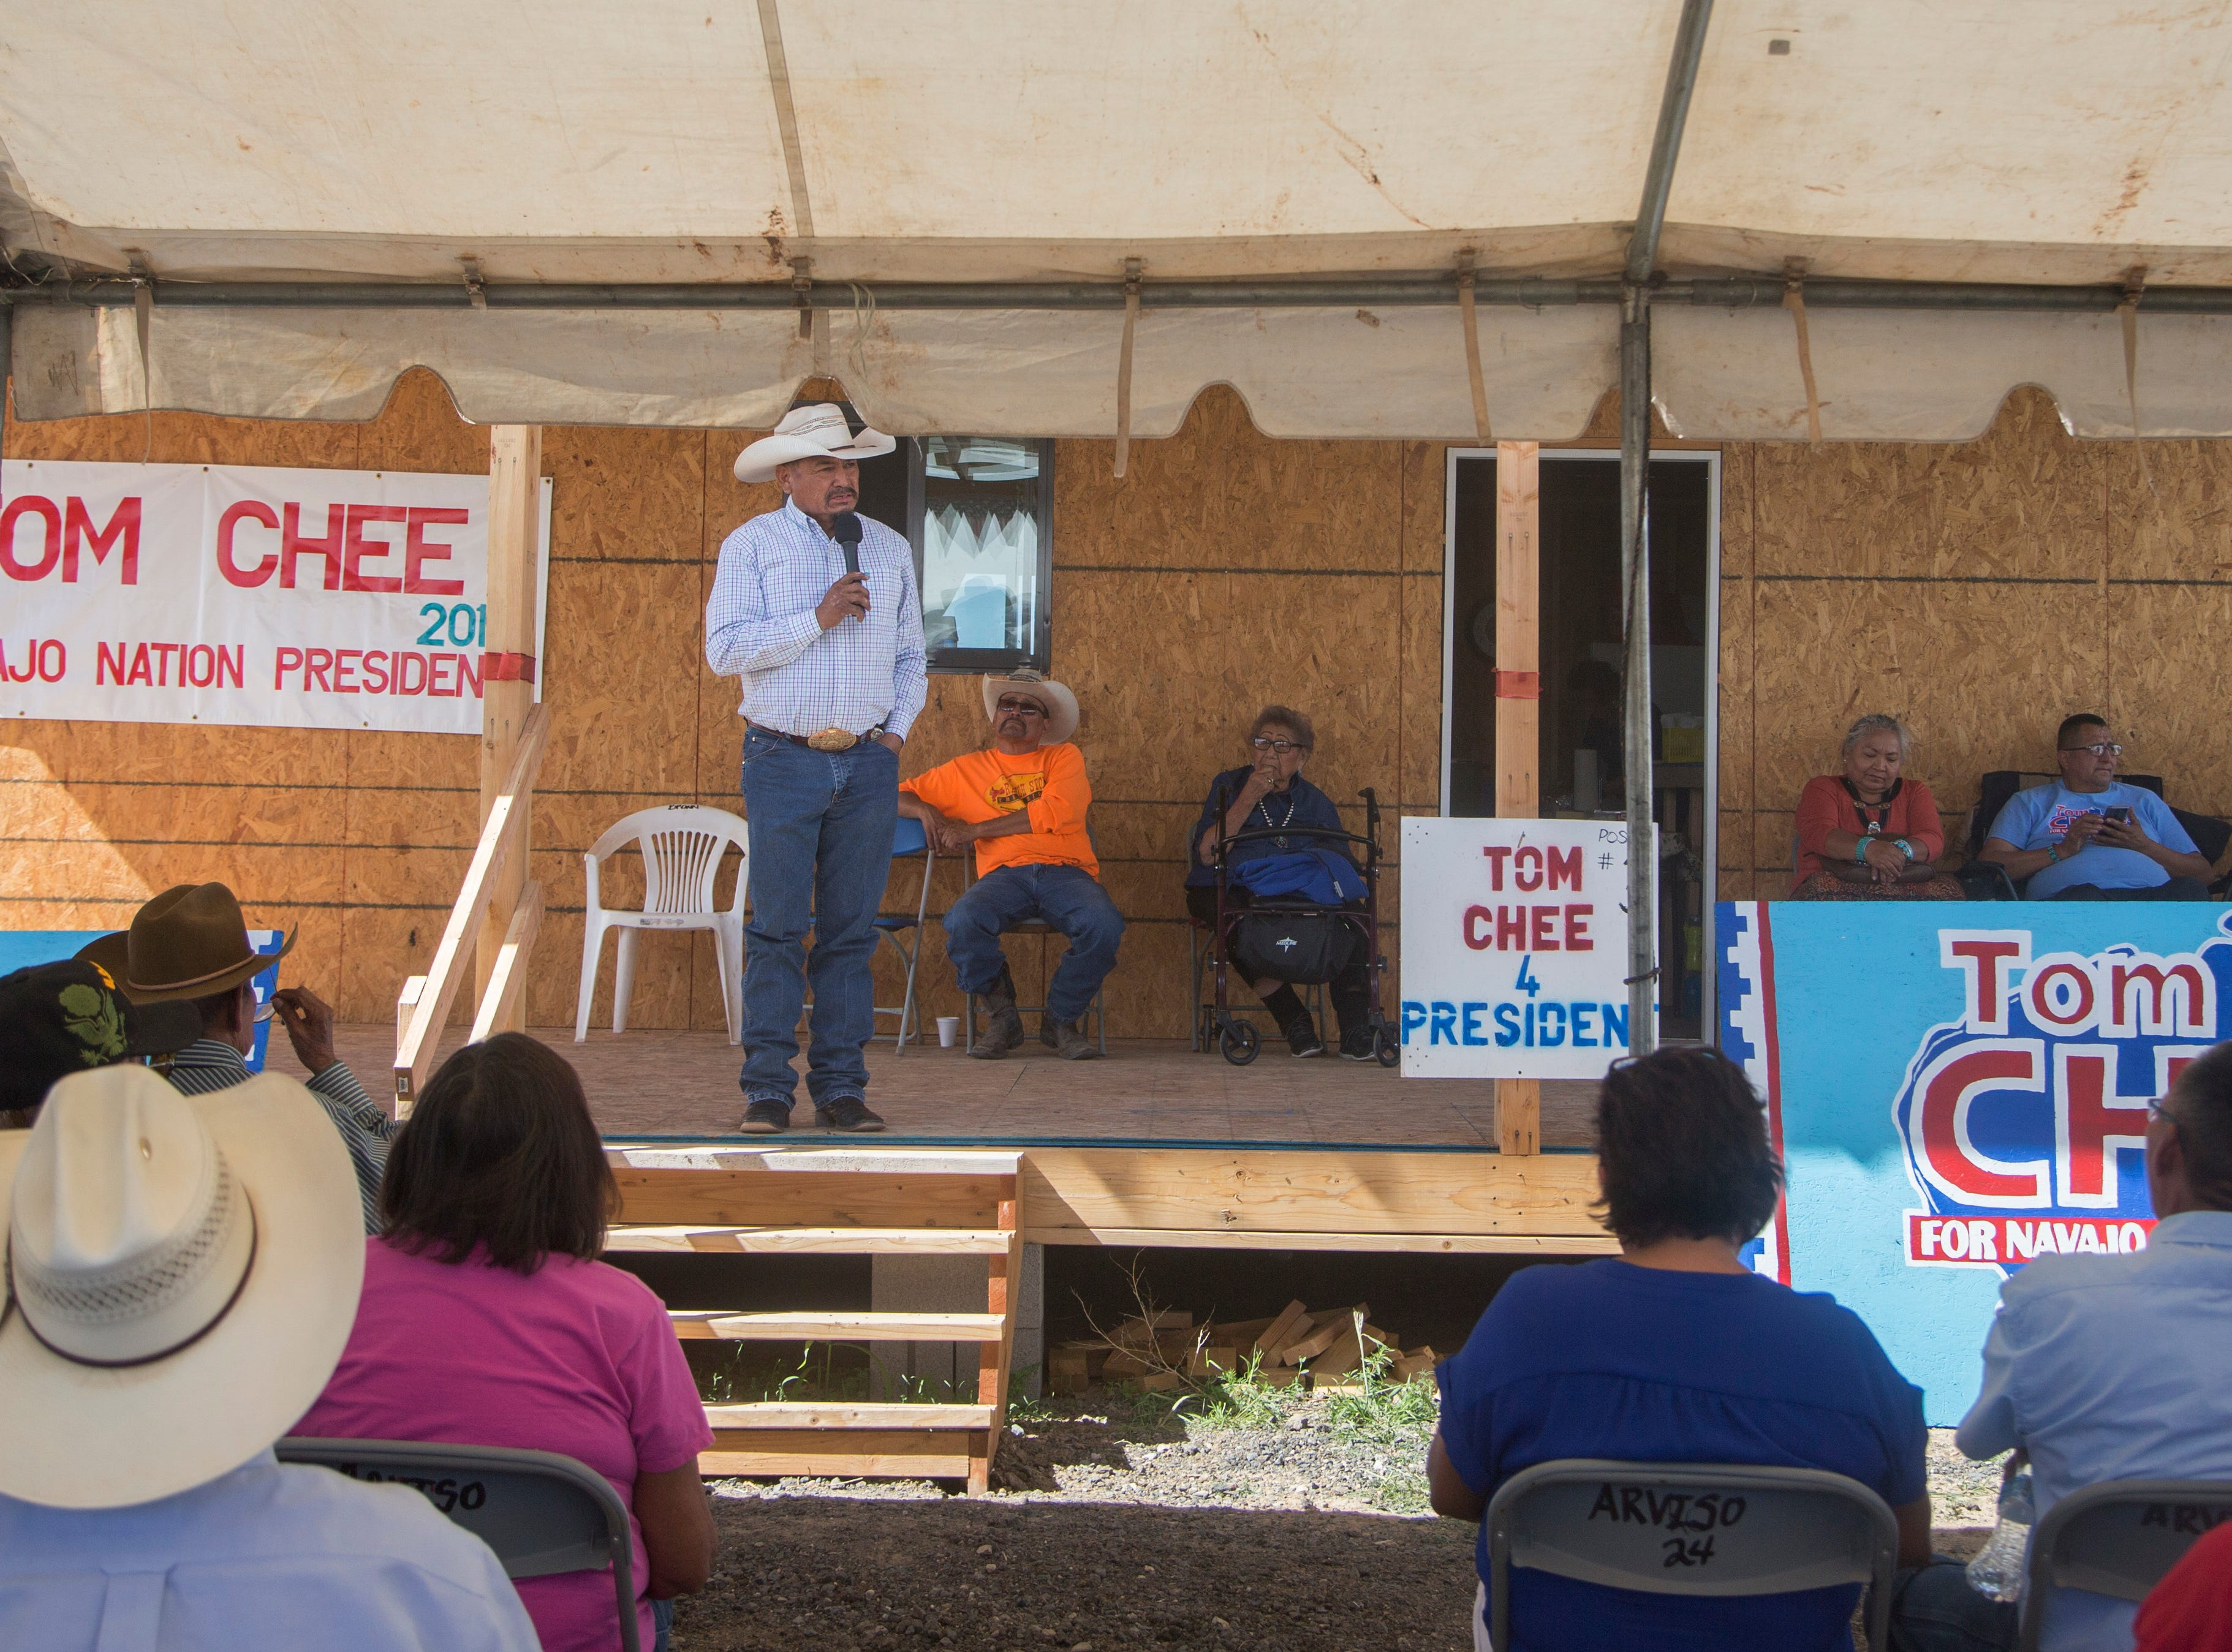 Navajo Nation presidential candidate Tom Chee addresses his supporters and touches on his campaign platform on Aug. 28, 2018, in Window Rock.